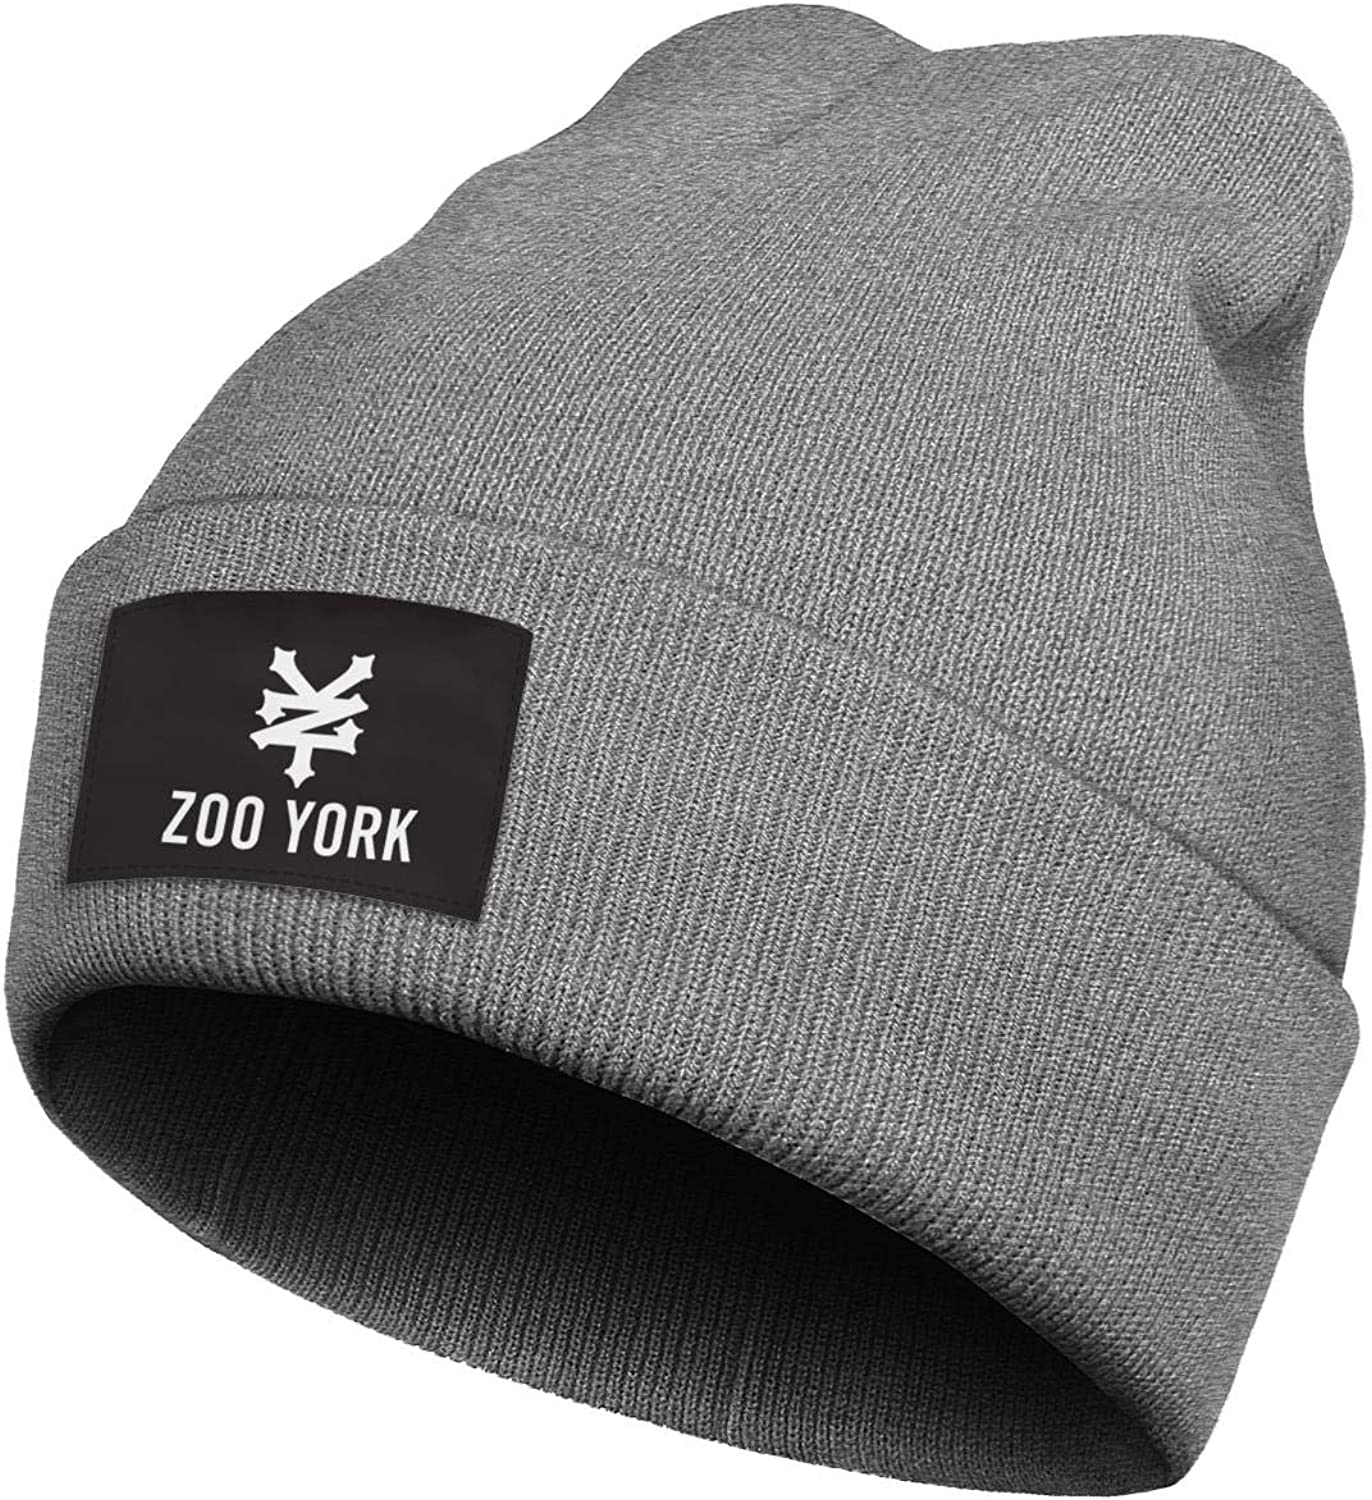 Heart Wolf Zoo-York-Logo Knit Beany Hats Thick Winter Classic Skull Hiphop Hat for Men Women